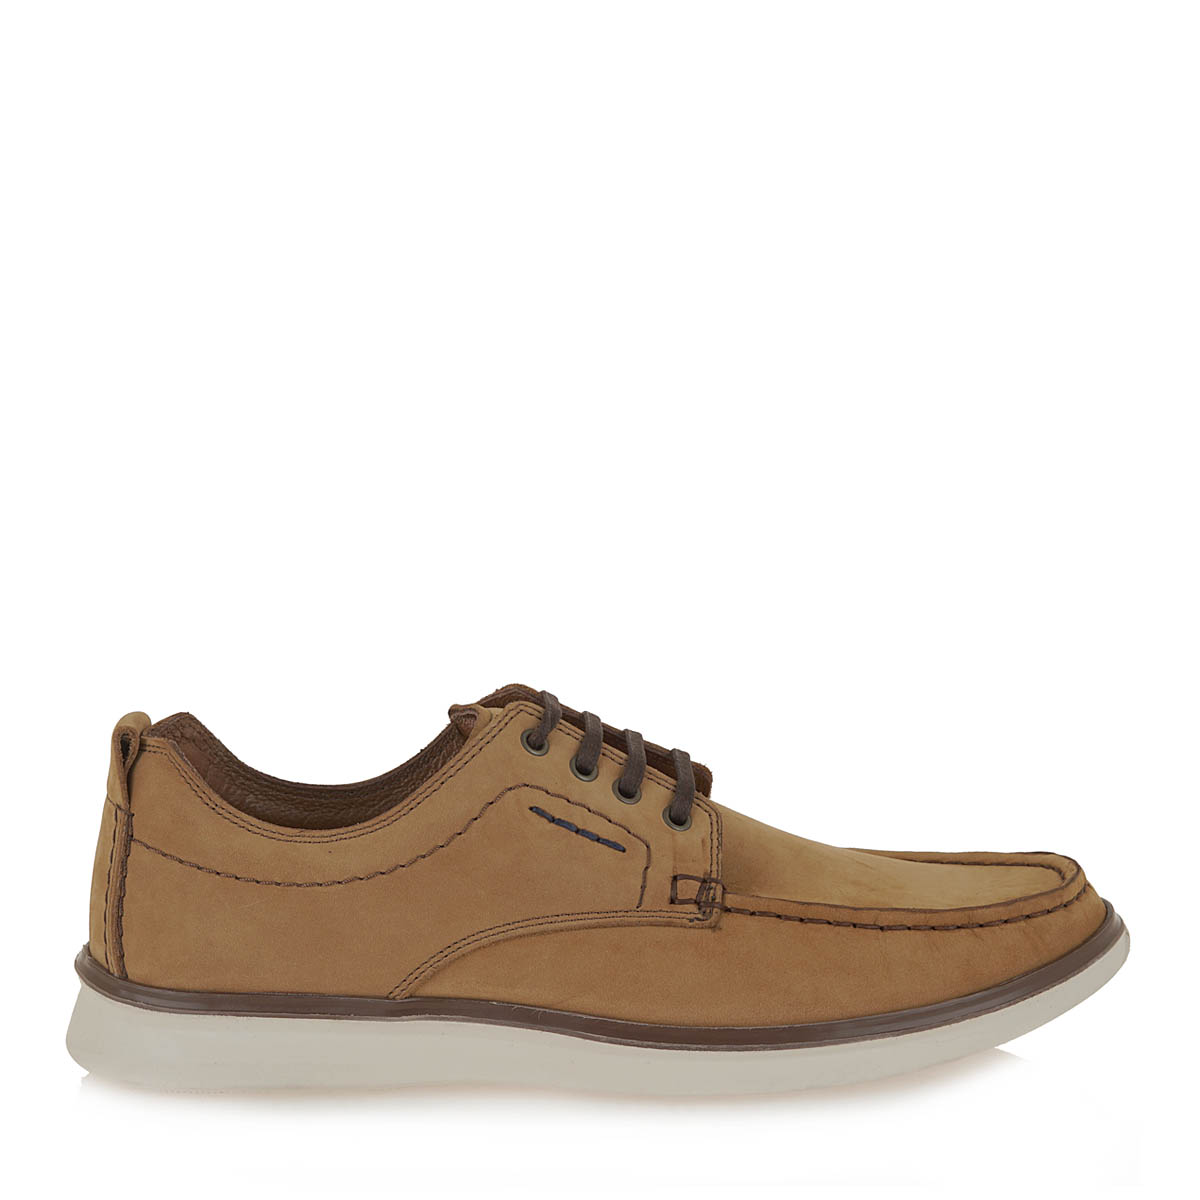 BOAT SHOES σχέδιο: I555V1002 outlet   ανδρικα   boat shoes